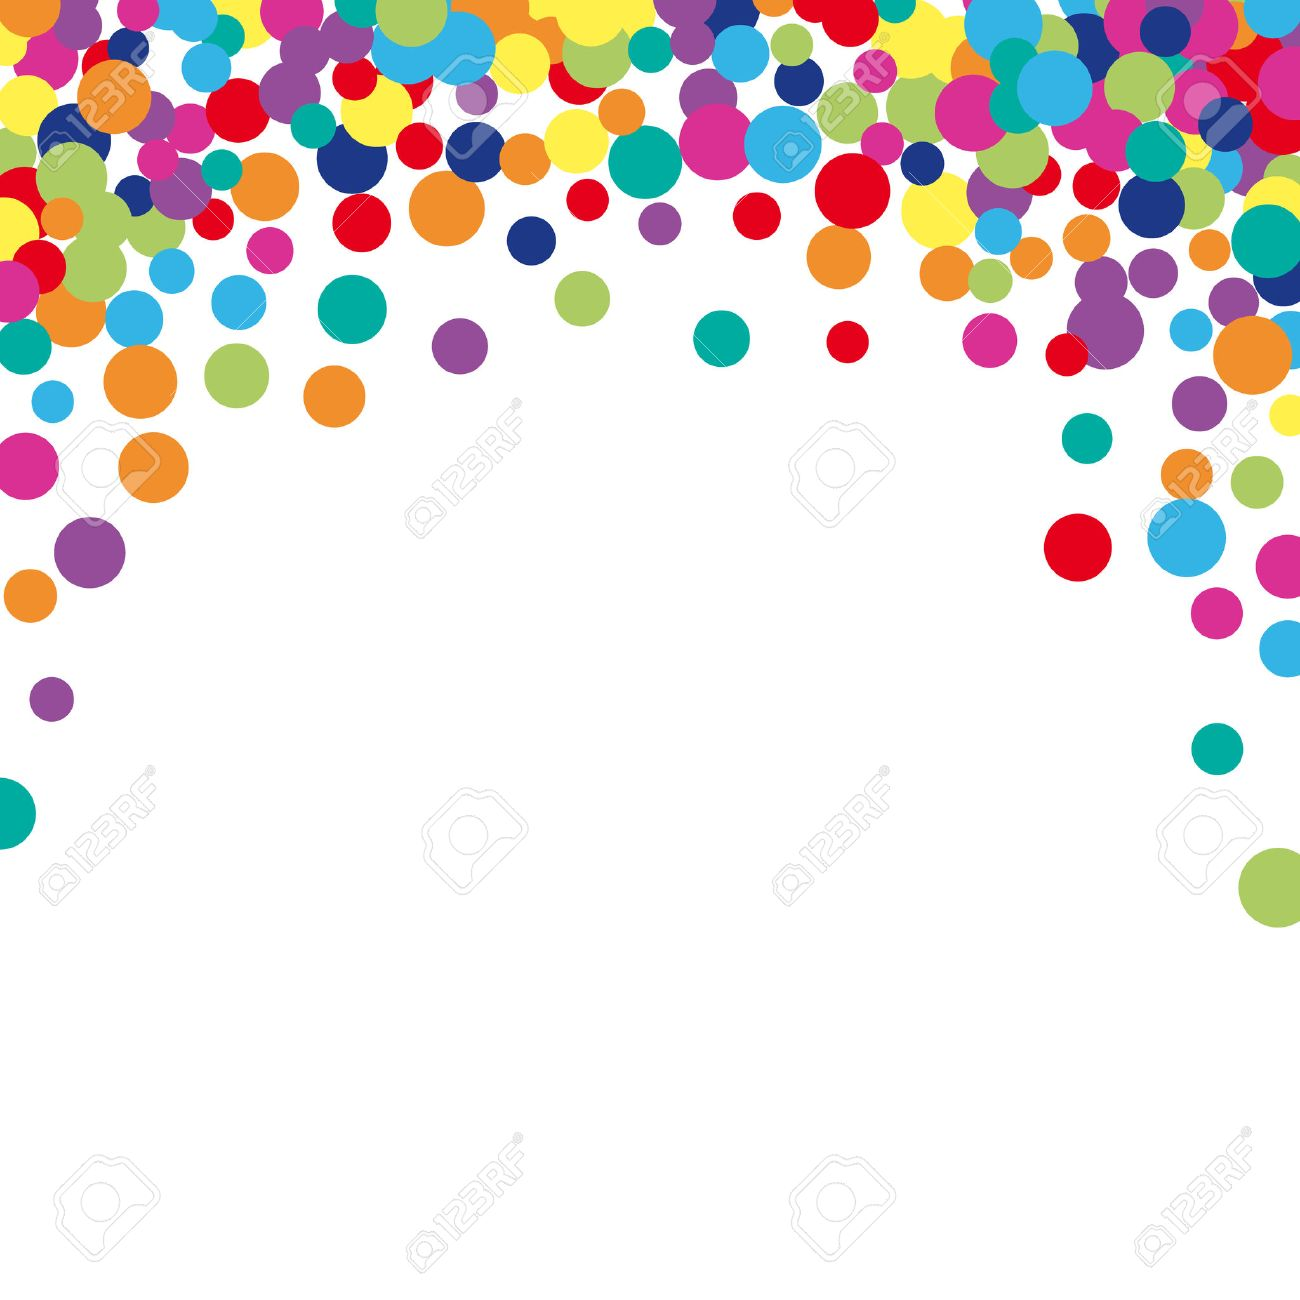 Colorful Abstract Spot Background Vector Illustration For Bright 1300x1300